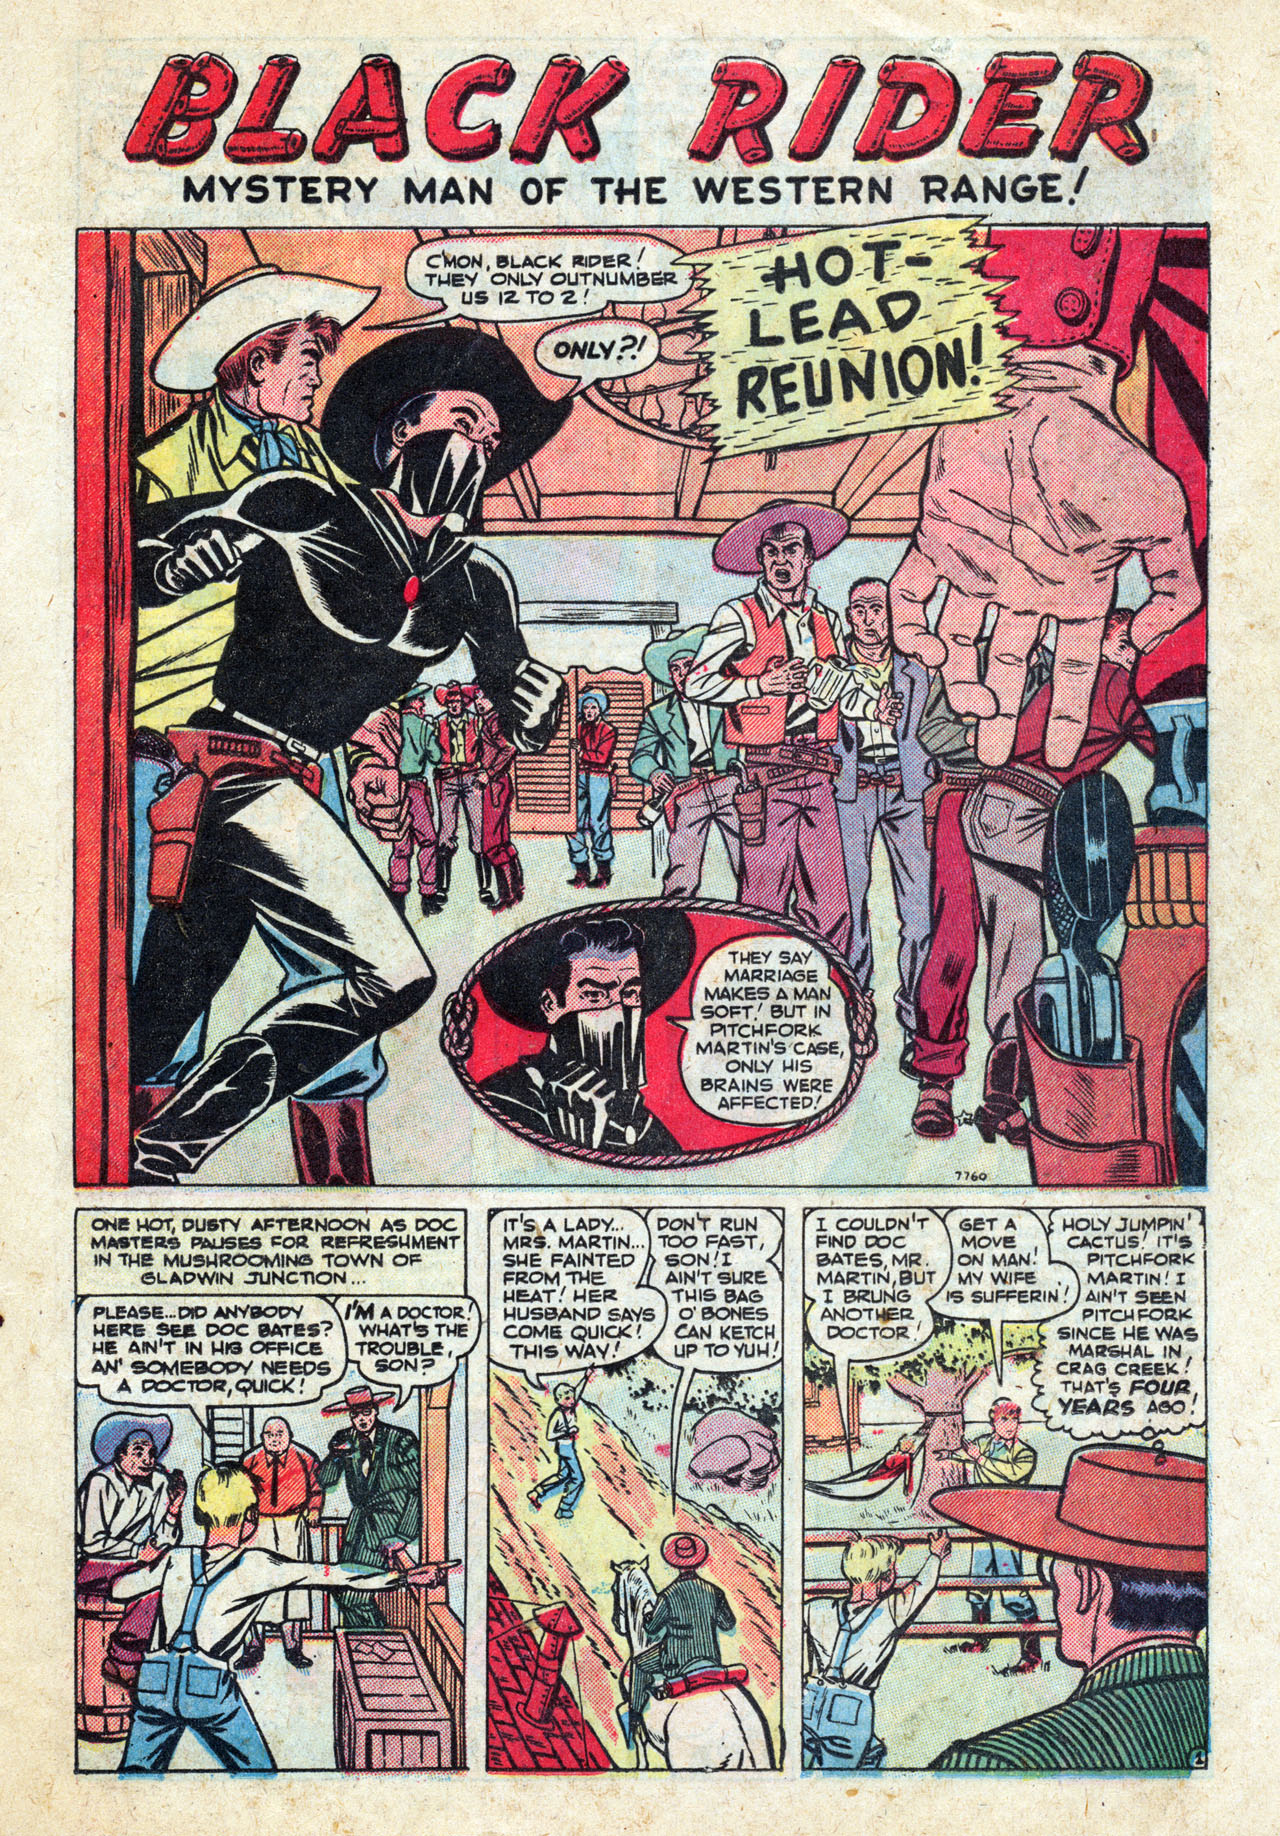 """Black Rider (1950) #12, interior story """"Hot Lead Reunion"""" - penciled by Al Hartley & Jay Scott Pike."""